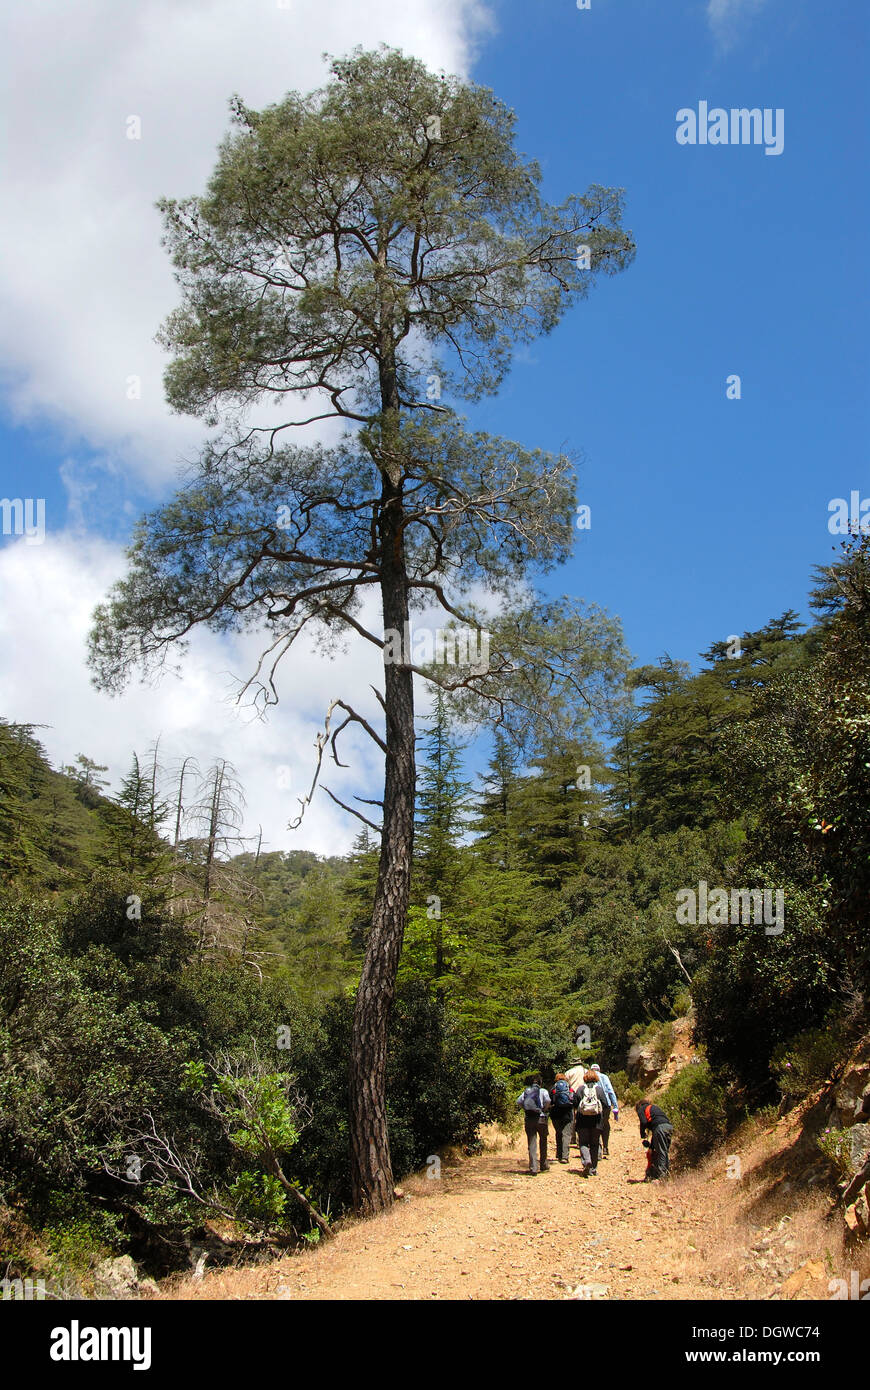 Group of hikers hiking below a tall Aleppo Pine (Pinus halepensis), Tripylos, Troodos Mountains, Southern Cyprus - Stock Image